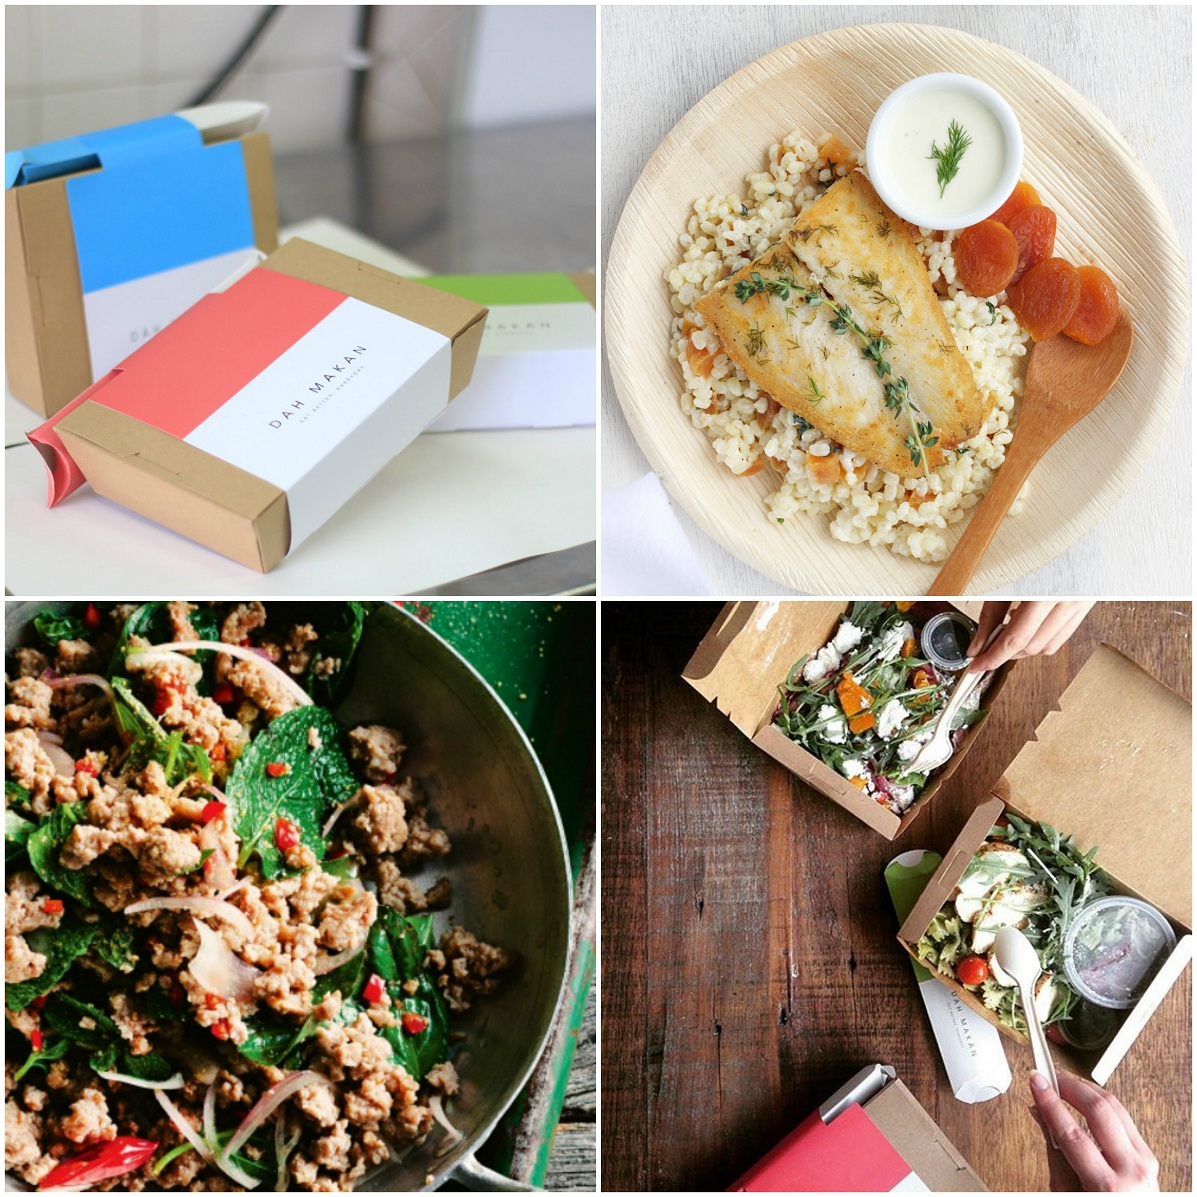 Top 18 Tried And Tested Healthy Delicious Meal Deliveries In Kl Kotak Makan Duo Sunday Green Dah